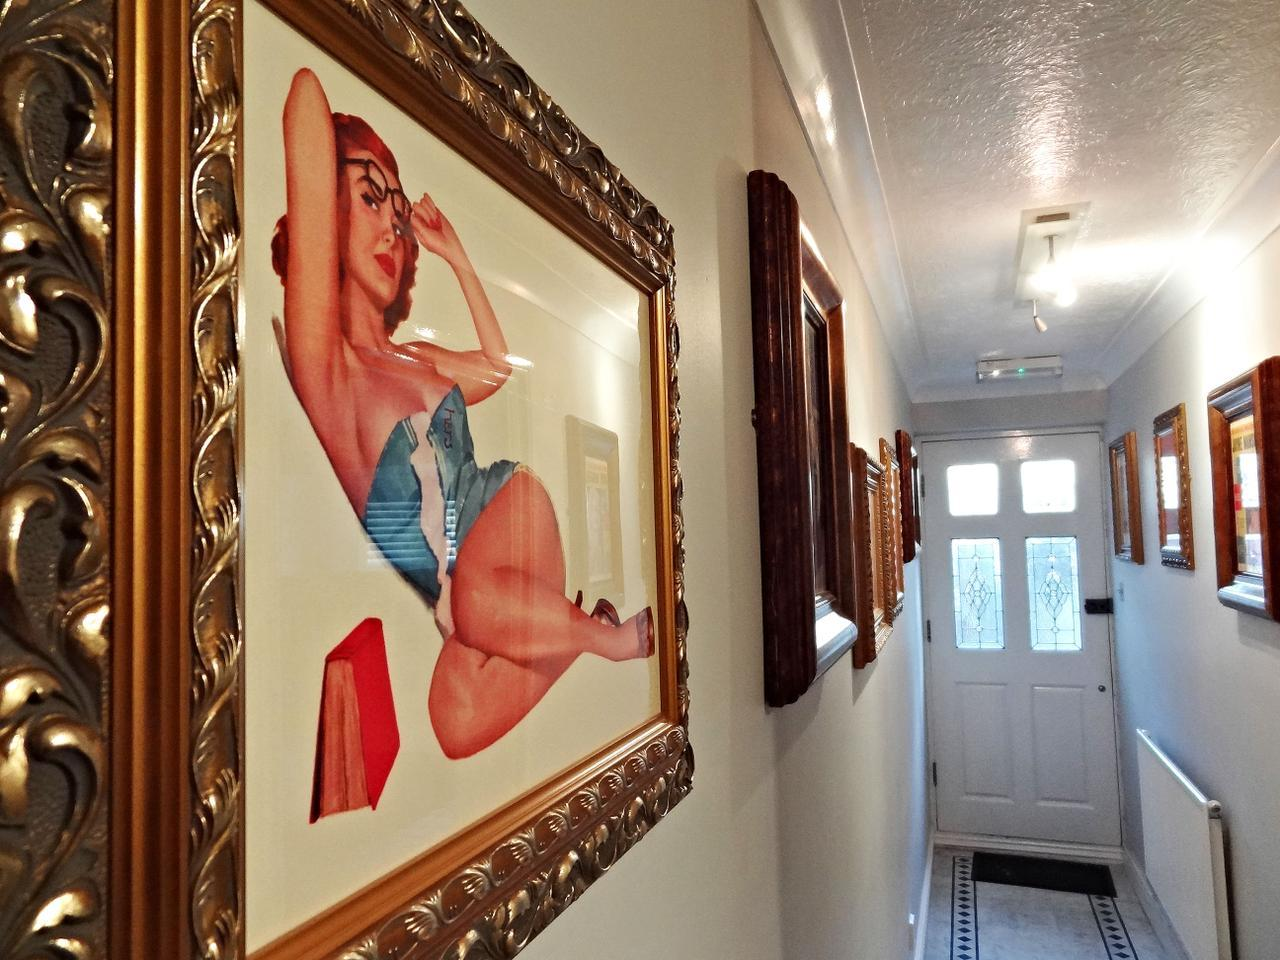 Pin Up Parlourama, Brighton & Hove Images - 15